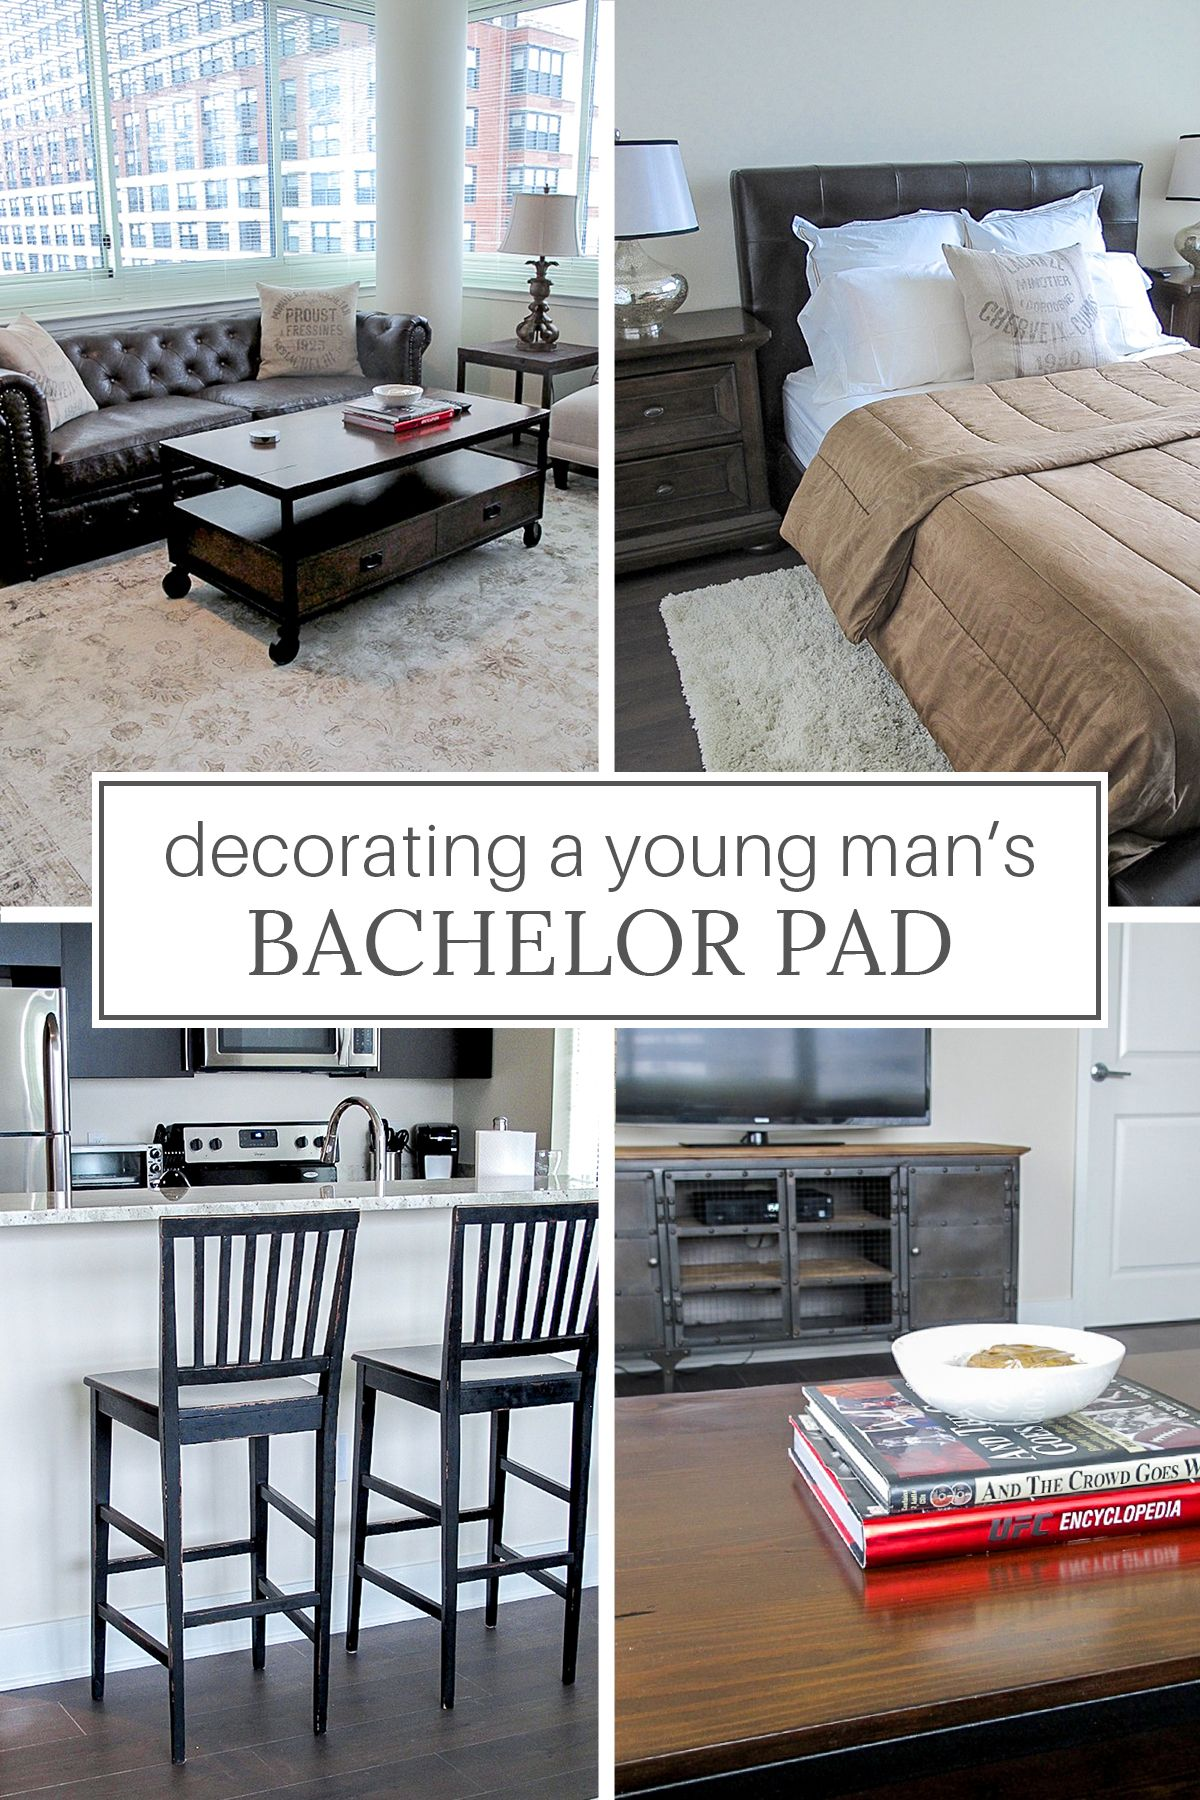 Bachelor Pad Ideas Decorating A Young Man S Apartment On A Budget In 2020 Bachelor Pad Decor Mens Apartment Decor Bachelor Pad Living Room